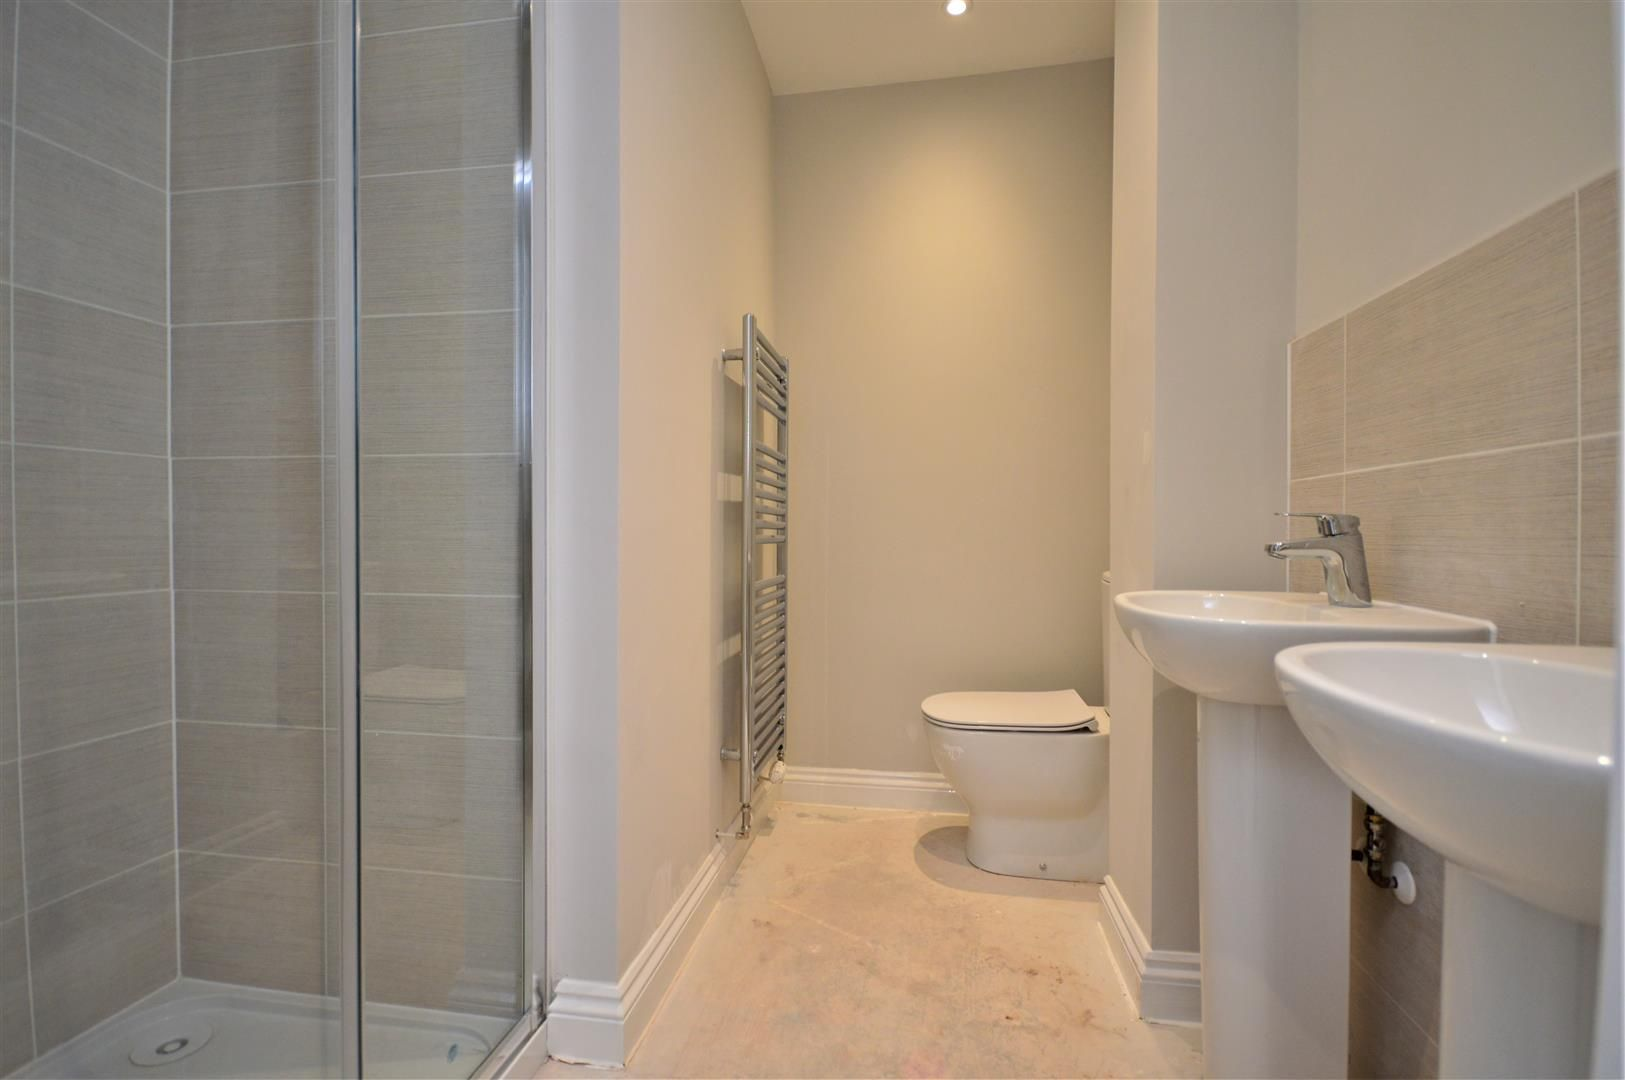 4 bed detached for sale in Kingstone 9